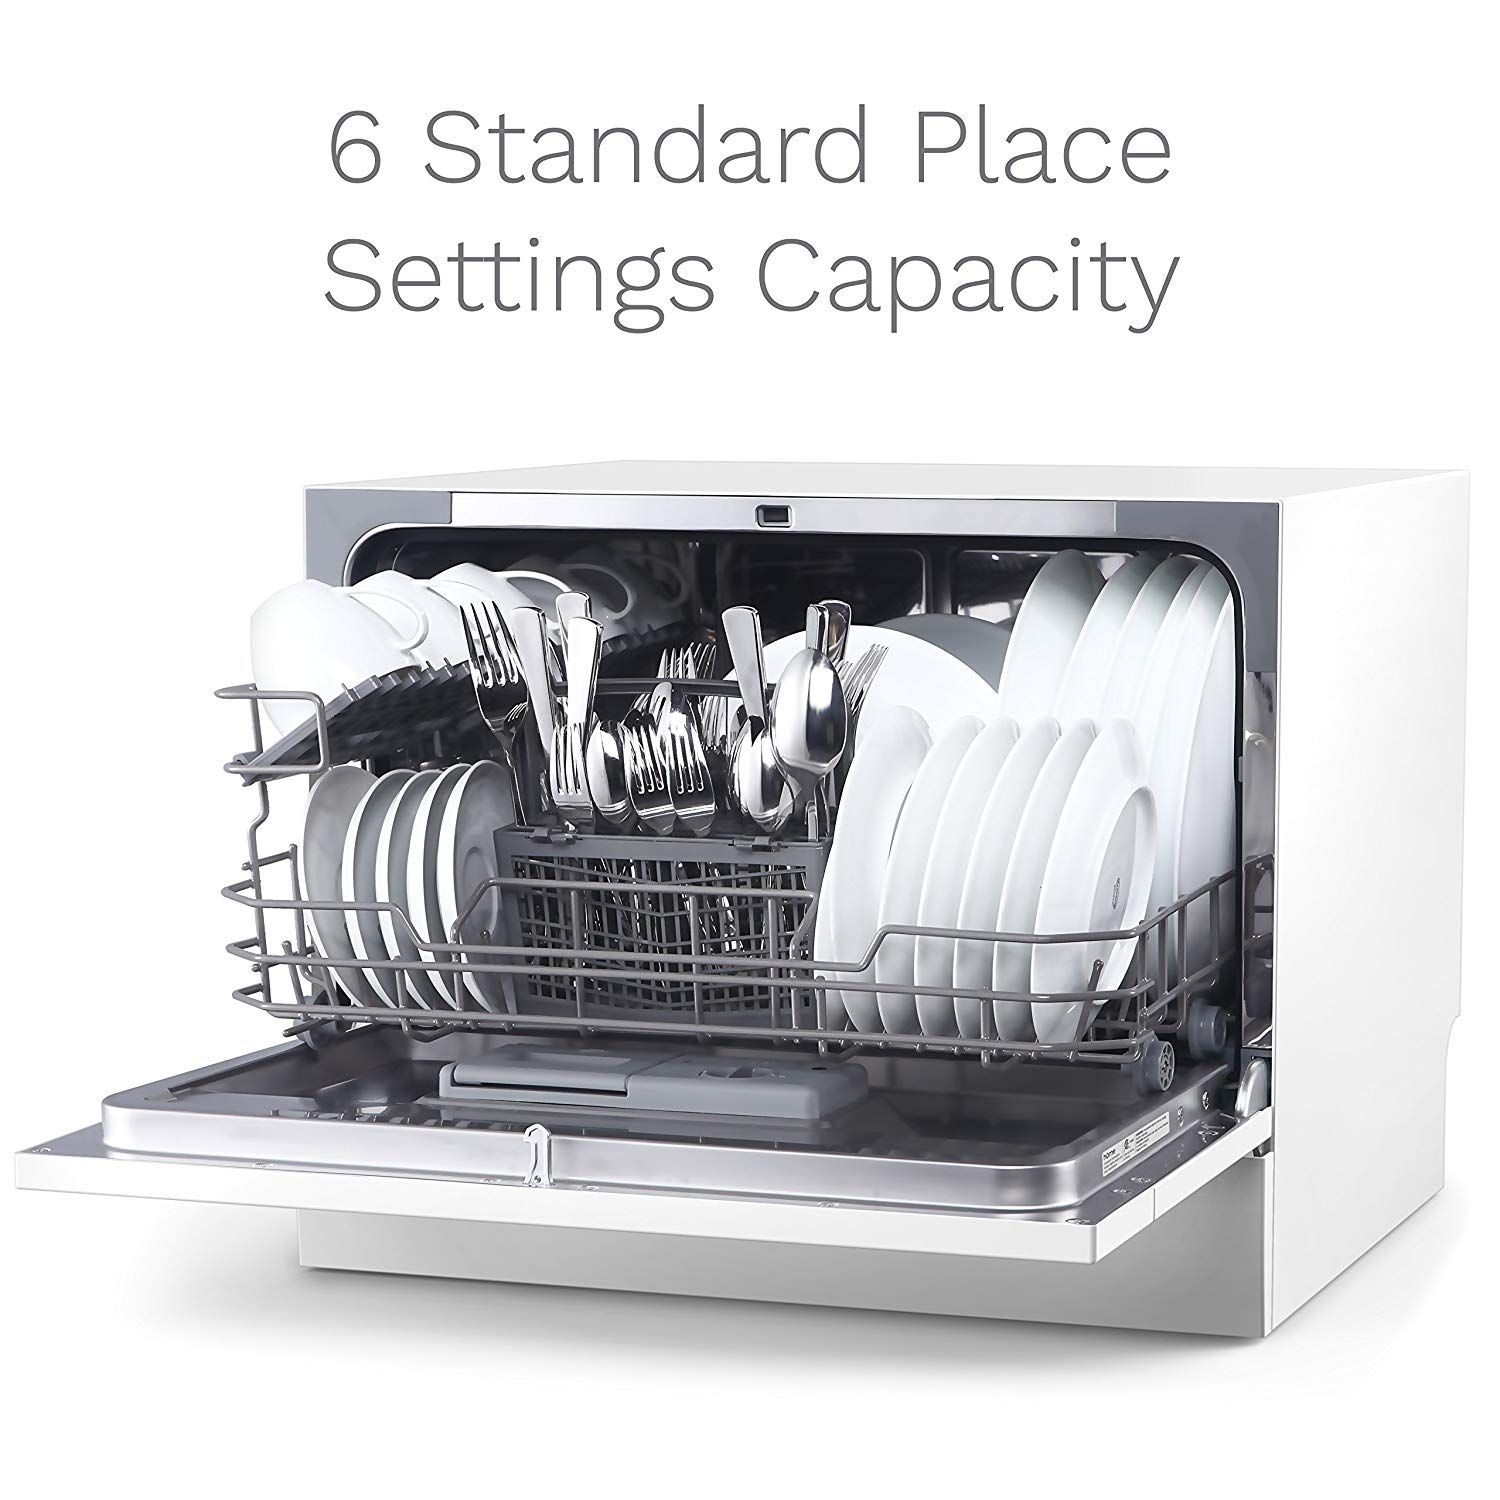 Homelabs Compact Countertop Dishwasher Portable Mini Dish Washer In Stainless Steel Interior For Countertop Dishwasher Best Dishwasher Small Apartment Office